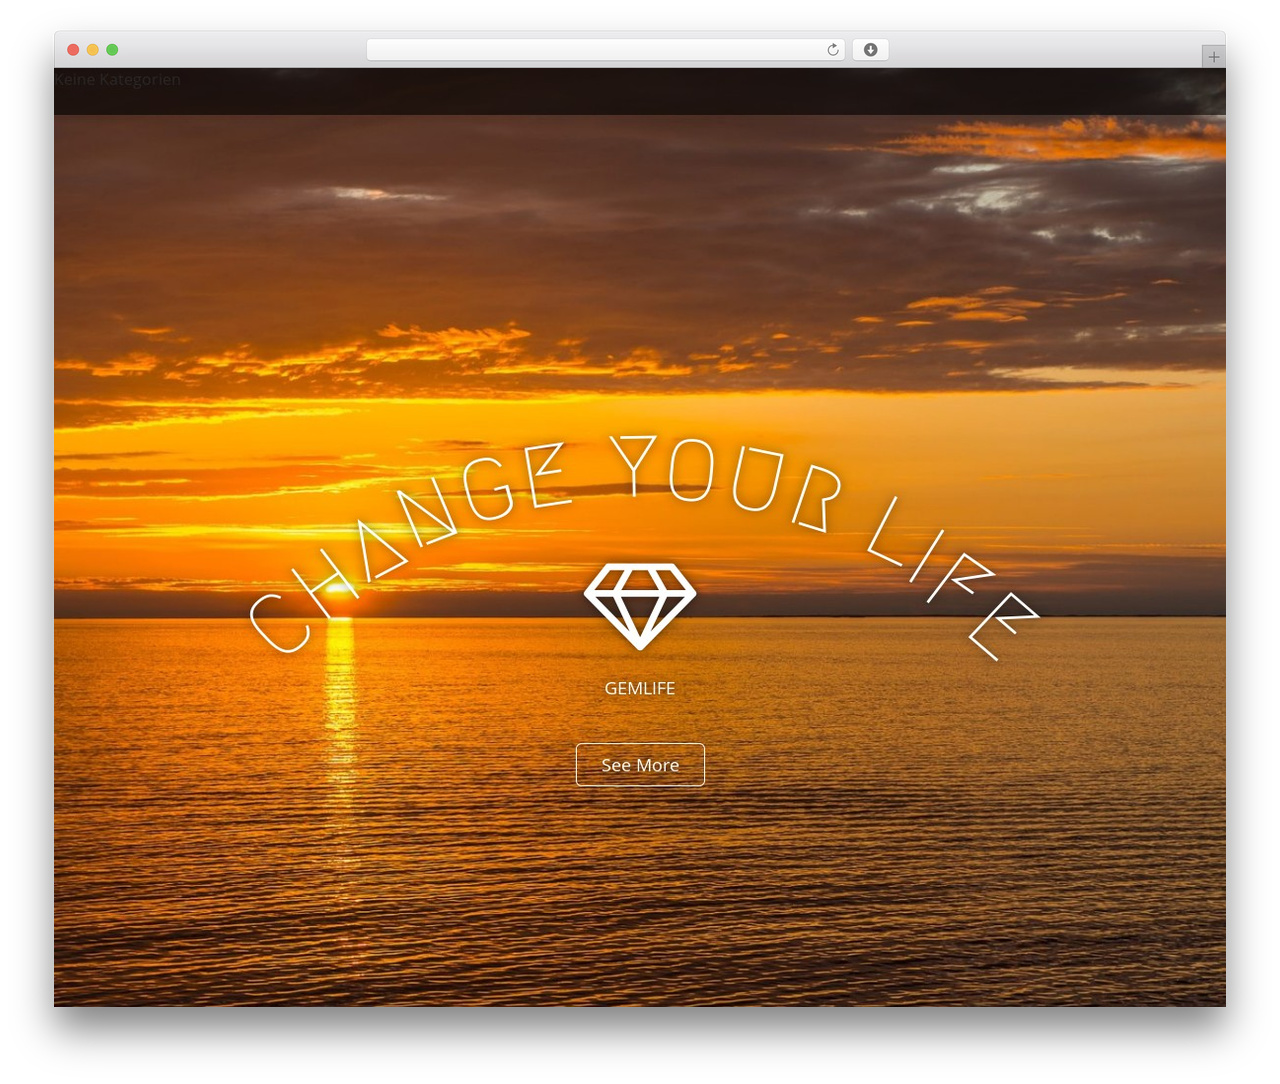 Arcade Basic WordPress page template - change-your-life-with-olli.com